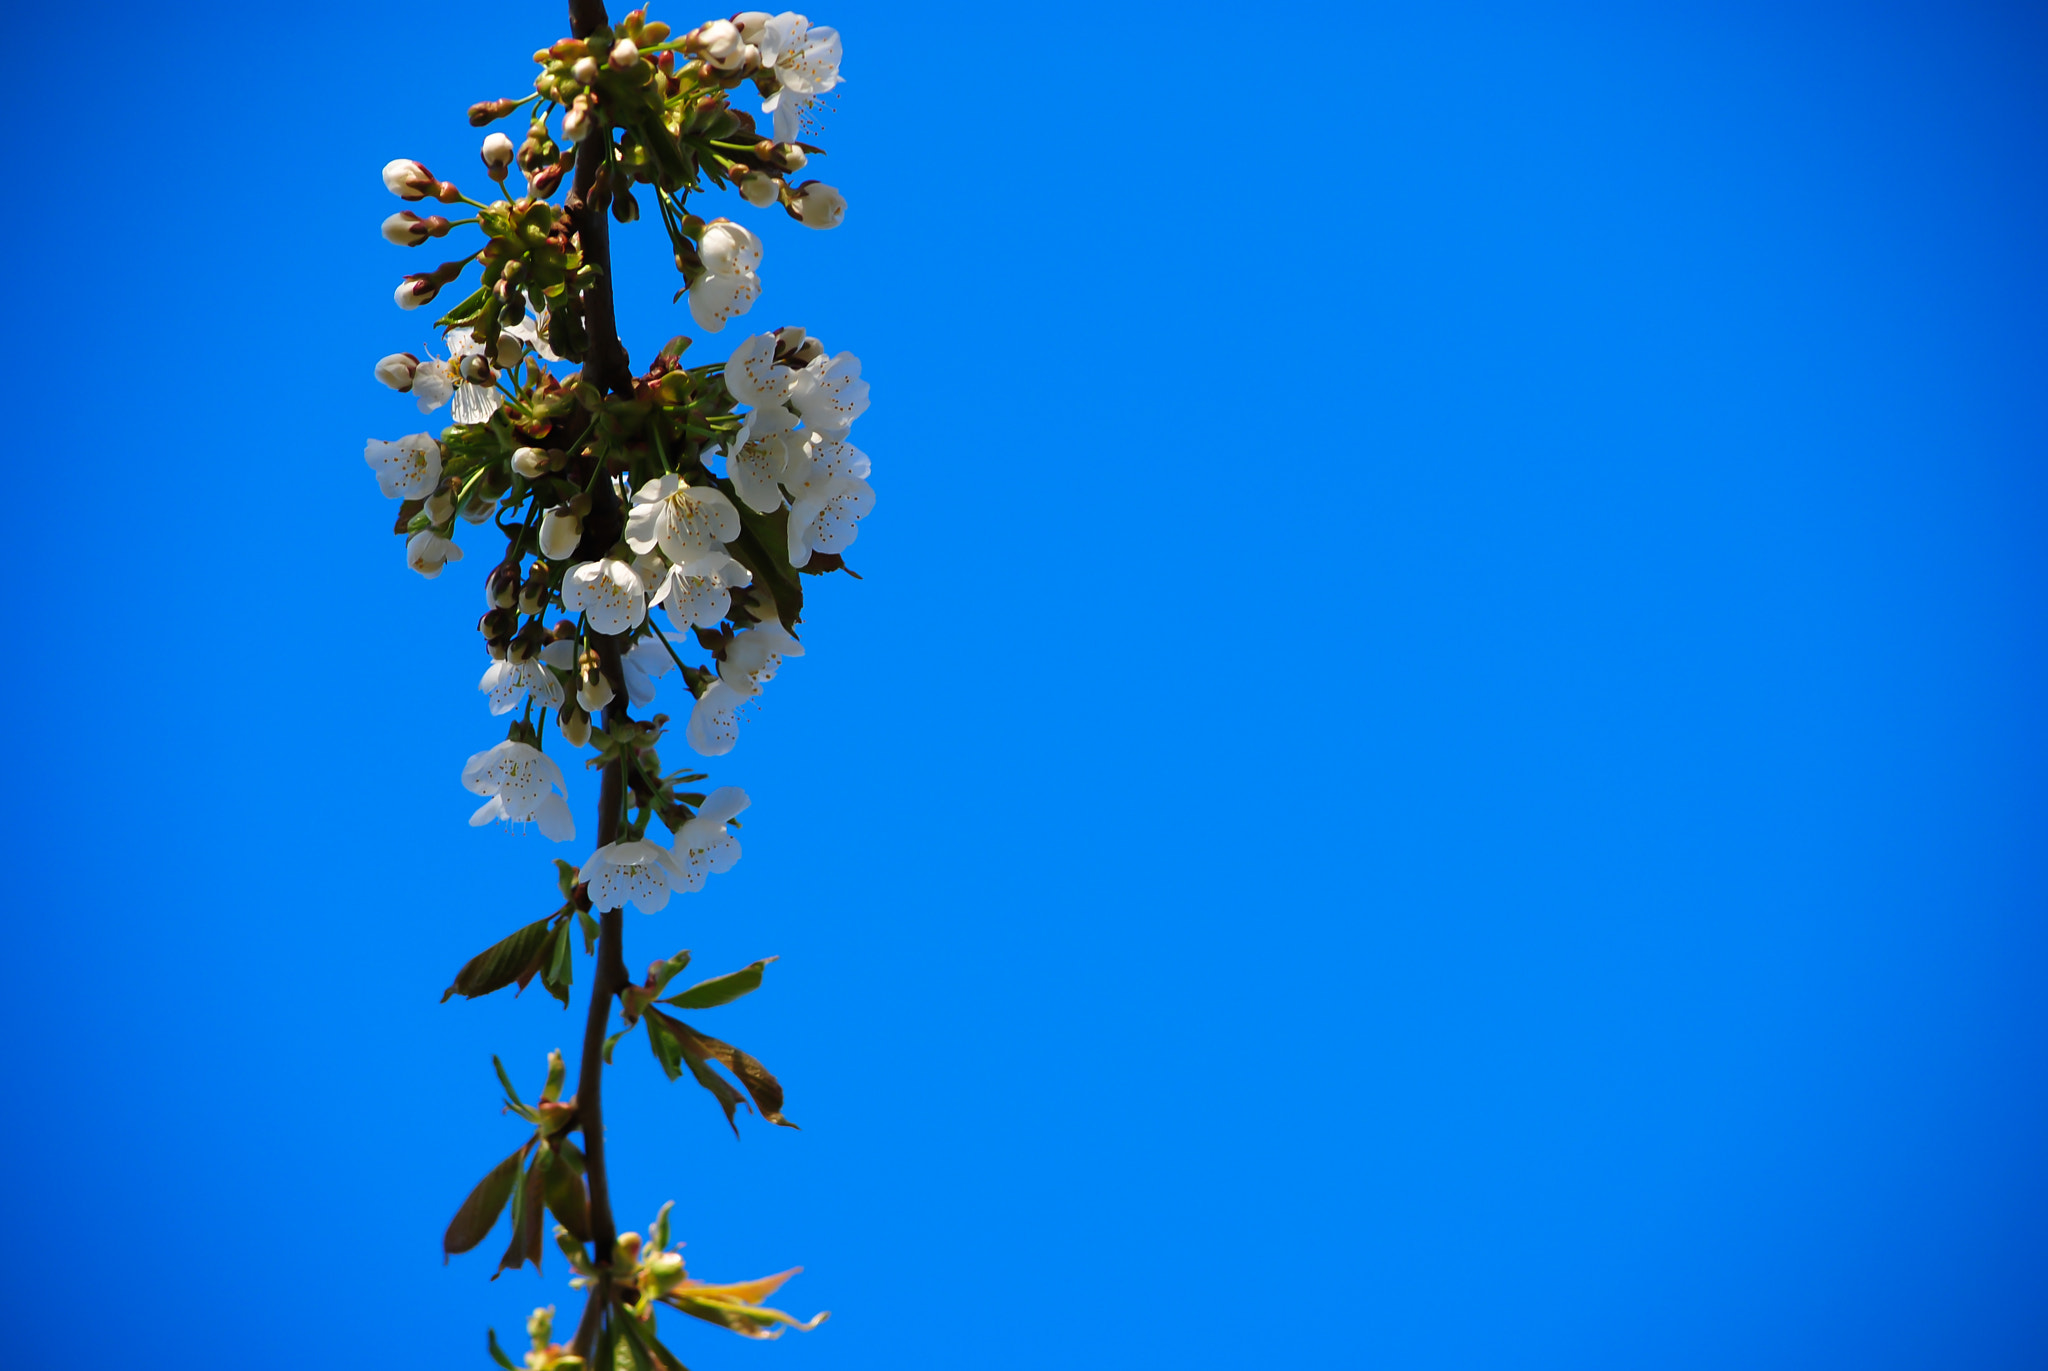 Photograph Blue sky and blossom by Sue 6 on 500px